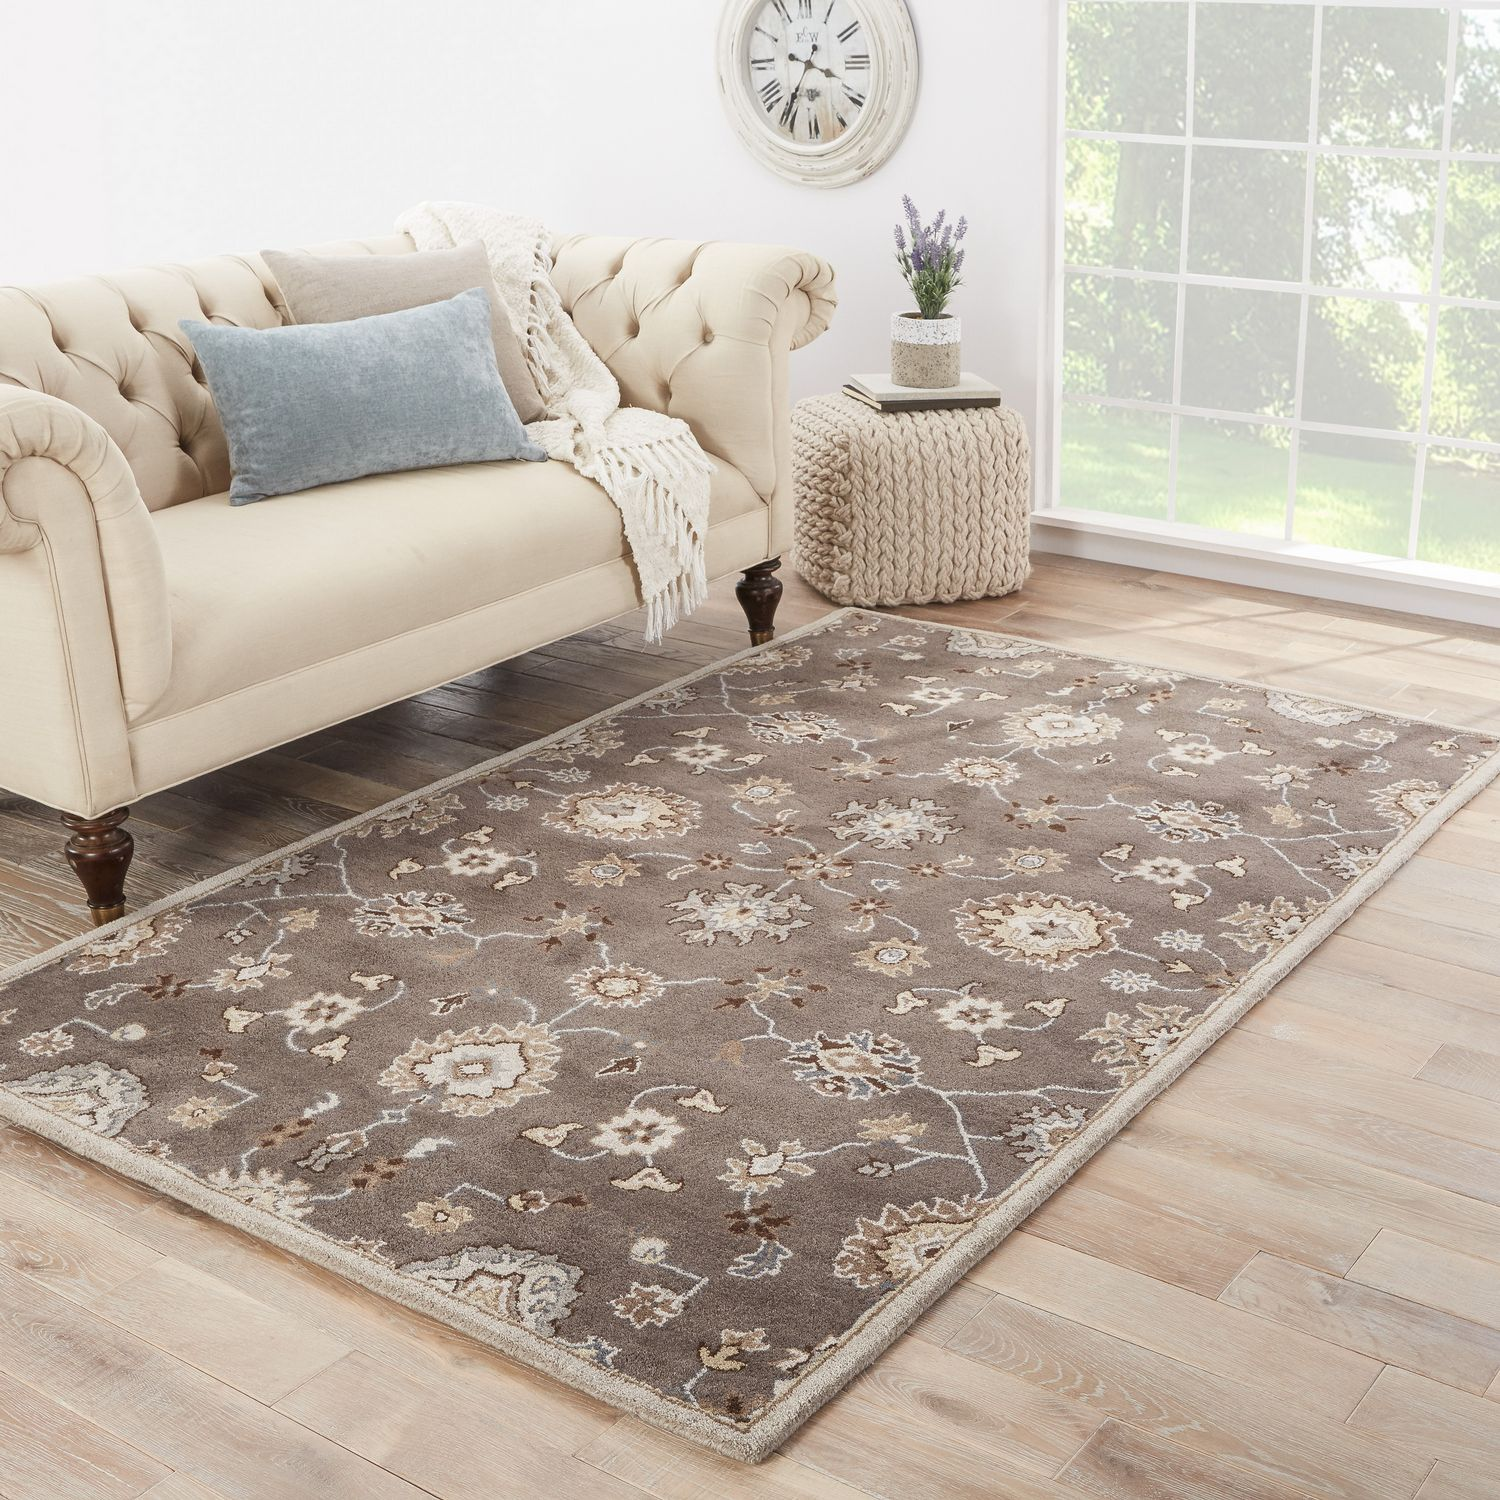 Jaipur Living Rugs Pm105 Poeme